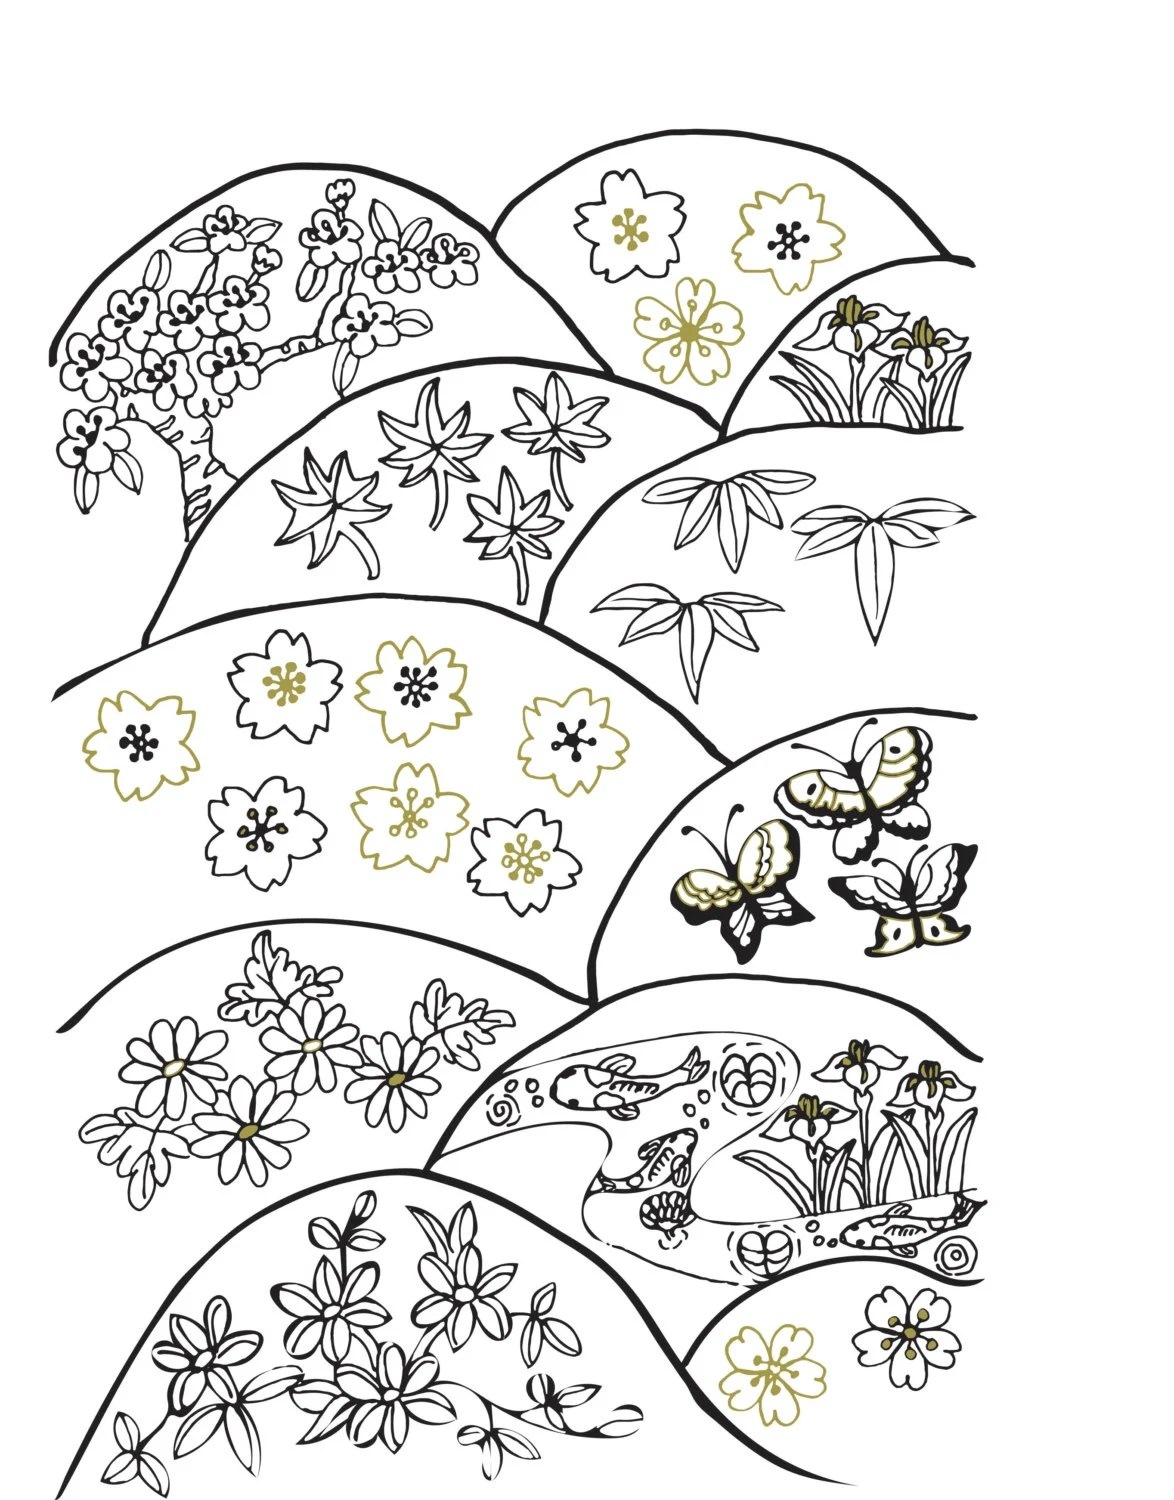 Items similar to Black, White and Gold Coloring Pages